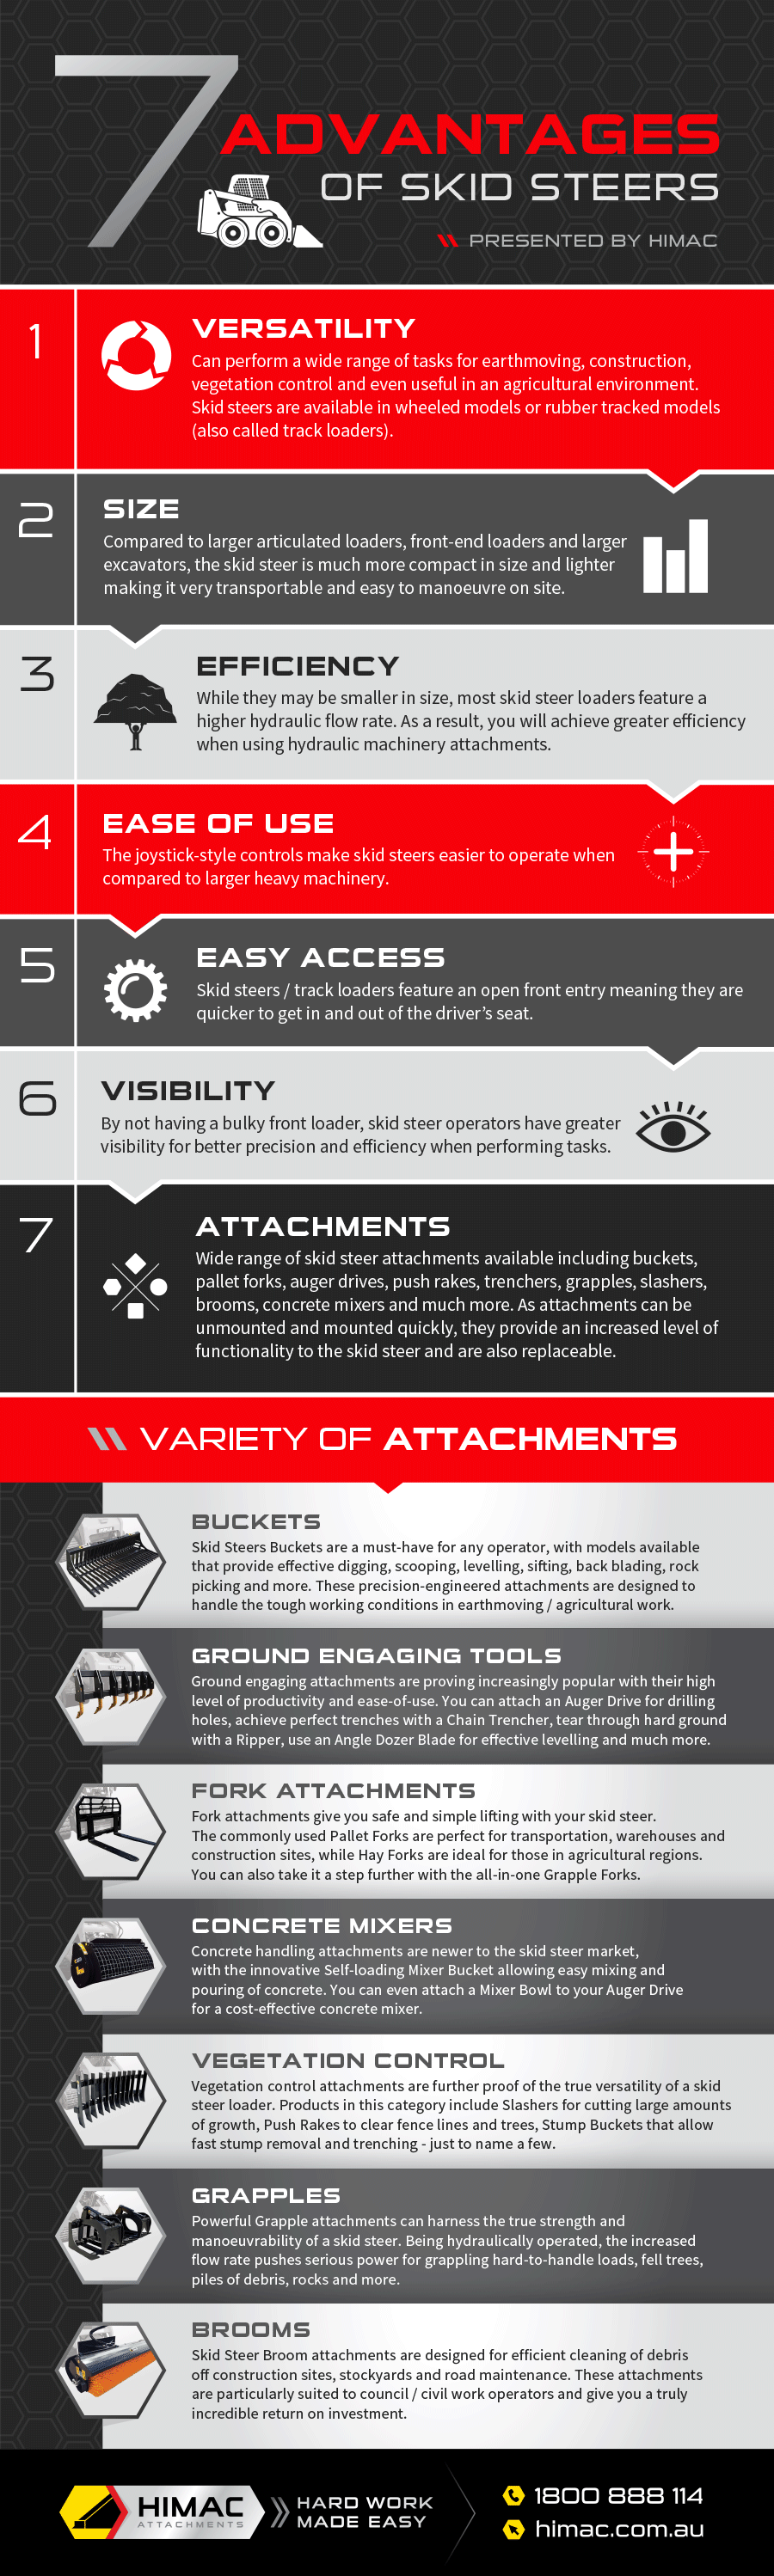 7 Advantages Of Skid Steers - Himac Attachments Infographic